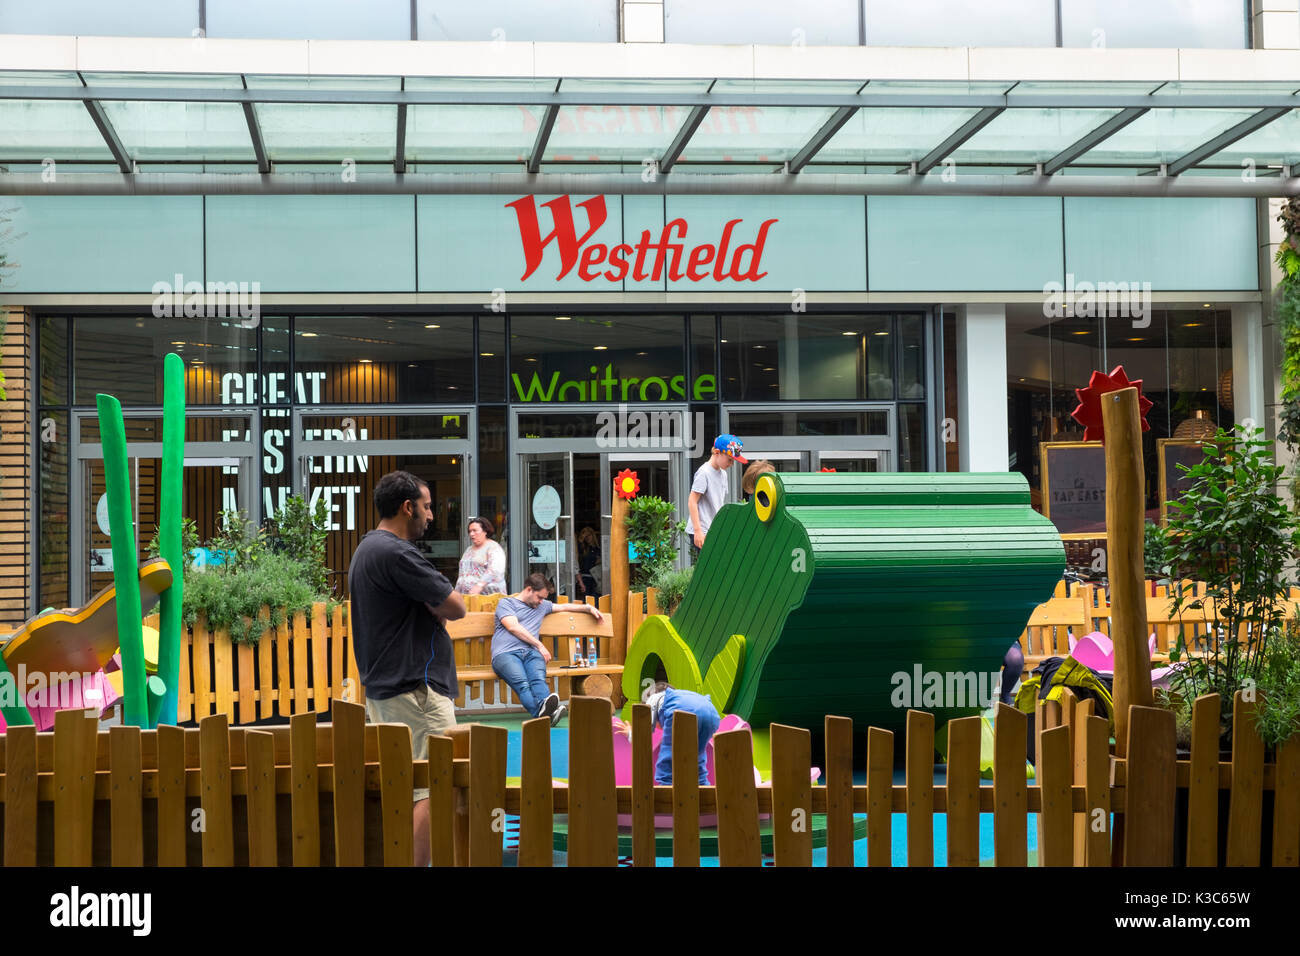 Westfield in Stratford, London. Play area for young children located outside the mall near the great eastern market - Stock Image